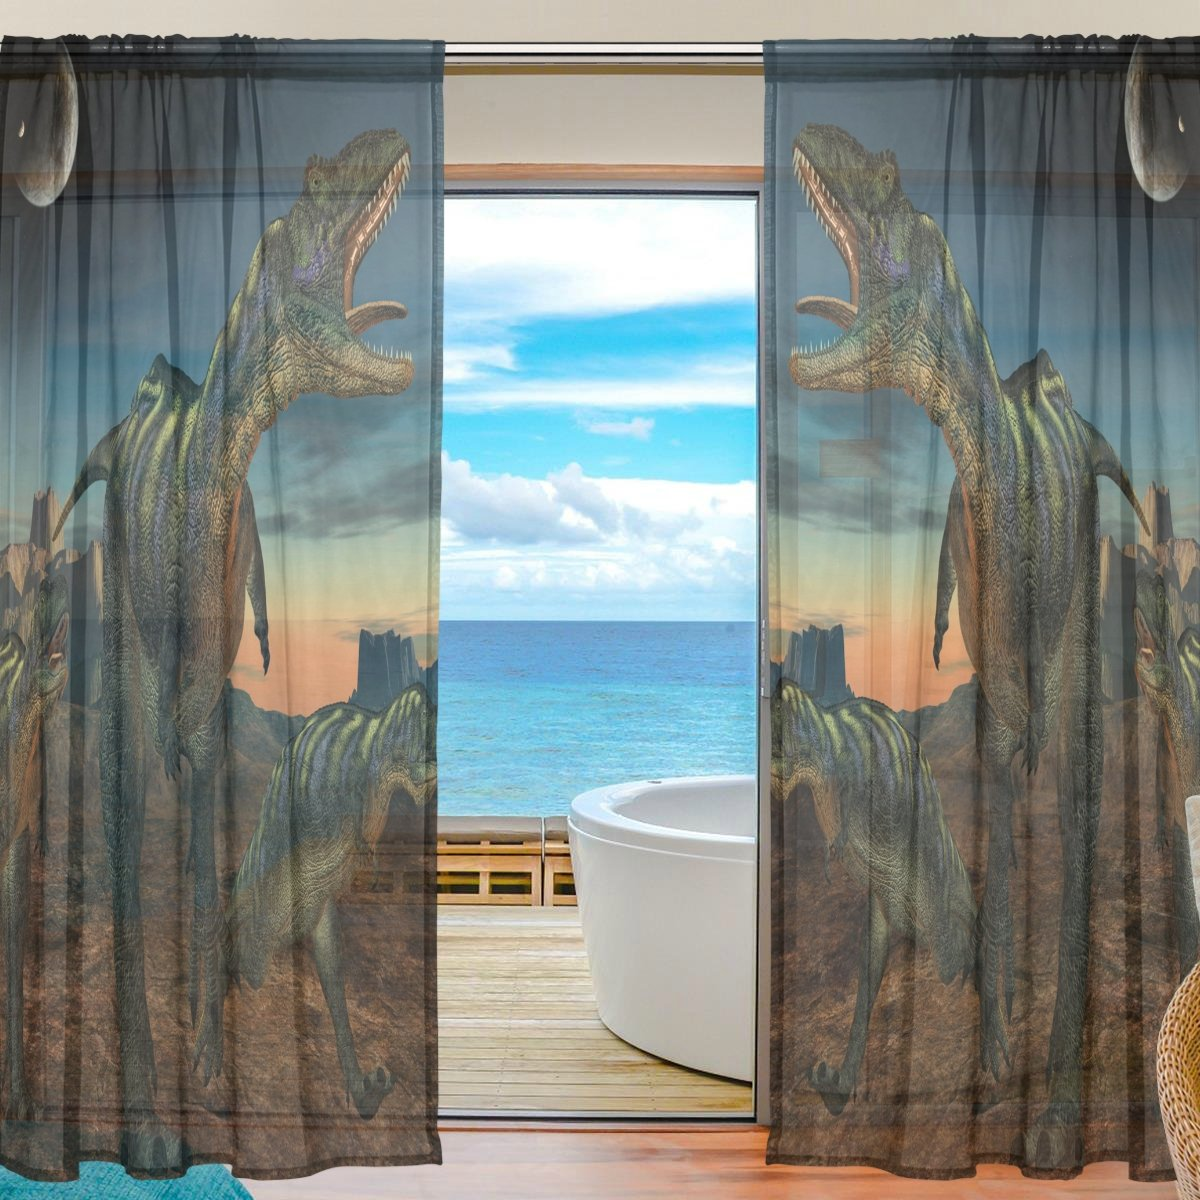 SEULIFE Window Sheer Curtain, African Animal Dinosaur Moon Voile Curtain Drapes for Door Kitchen Living Room Bedroom 55x84 inches 2 Panels